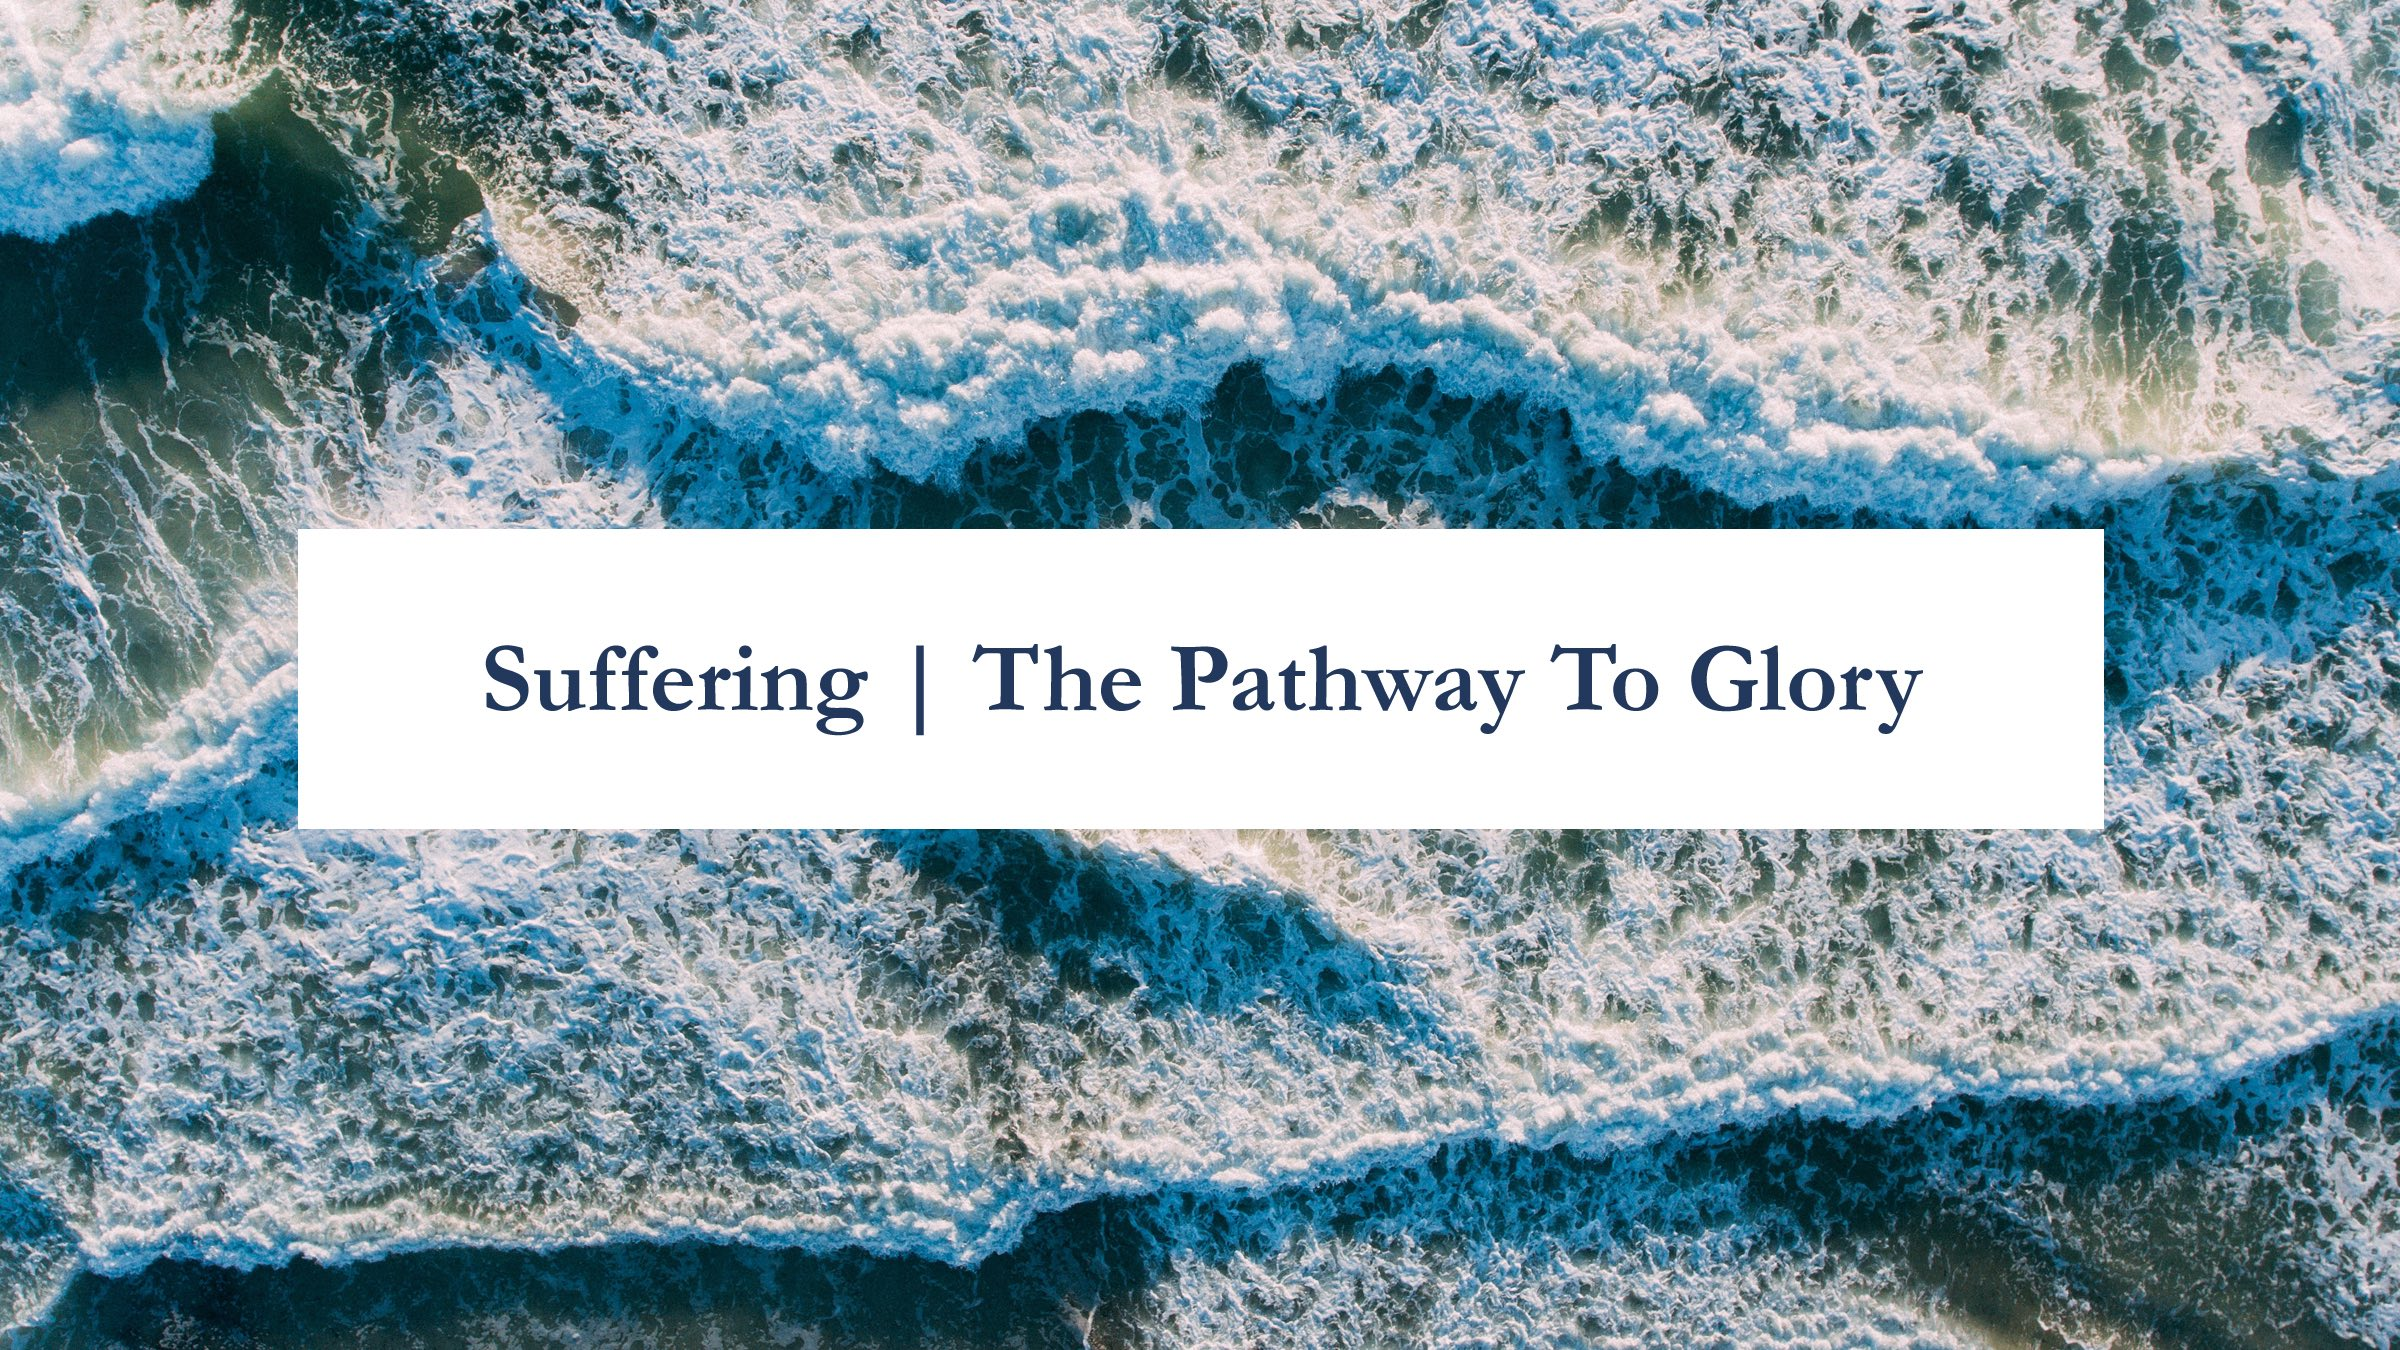 Suffering - The Pathway to Glory.jpg